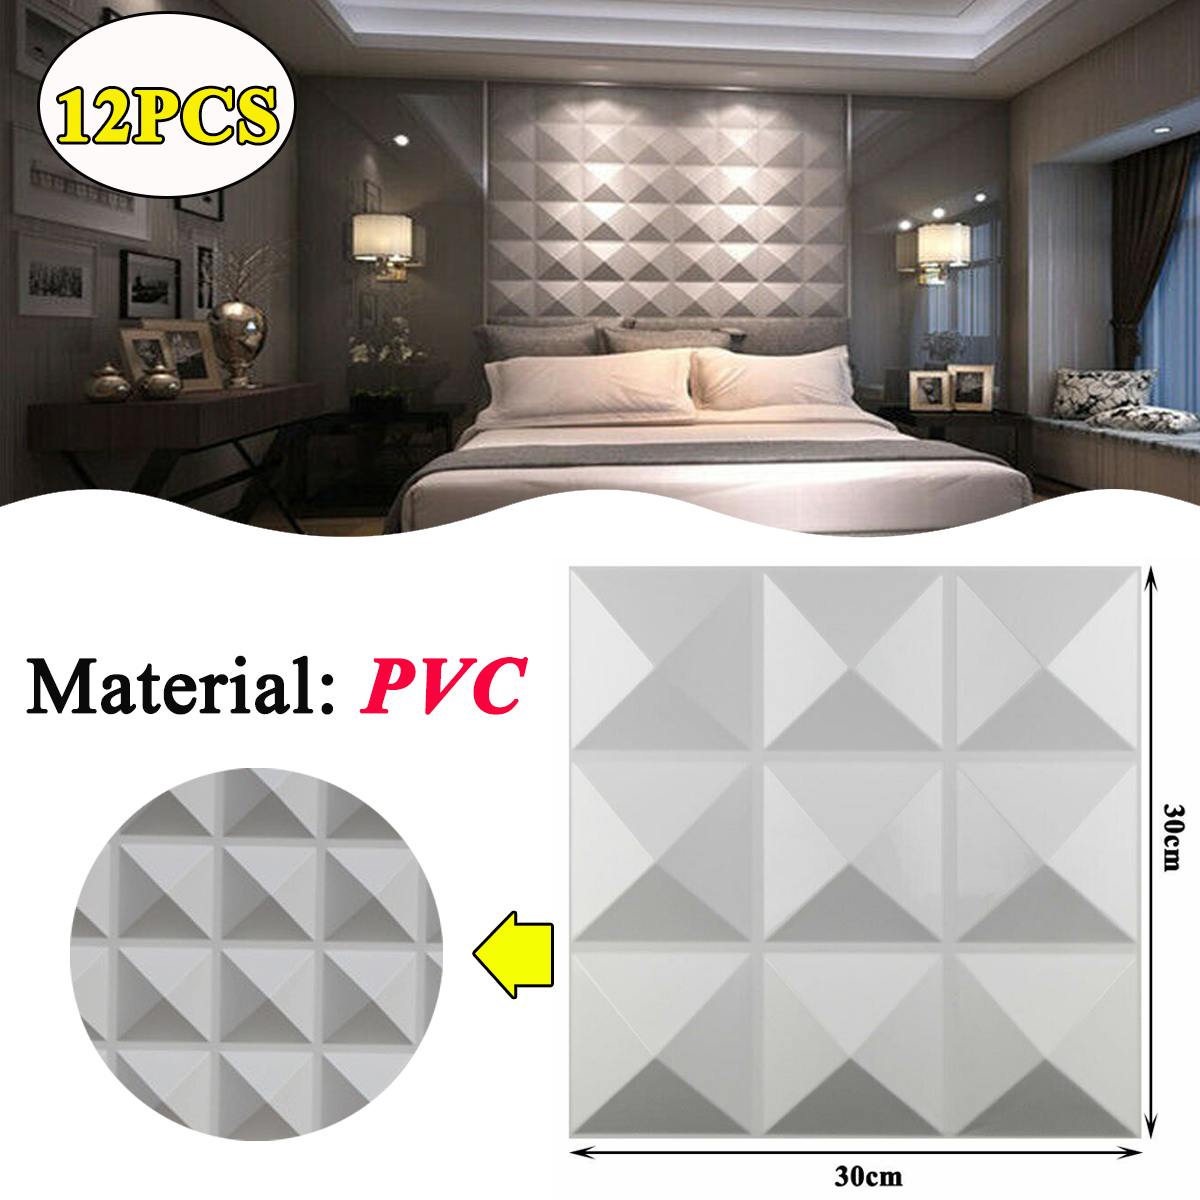 Pvc 3d Wall Panels White Textured Brick Effect Wall Decor 30cm 30cm Pack Of 12 Ebay